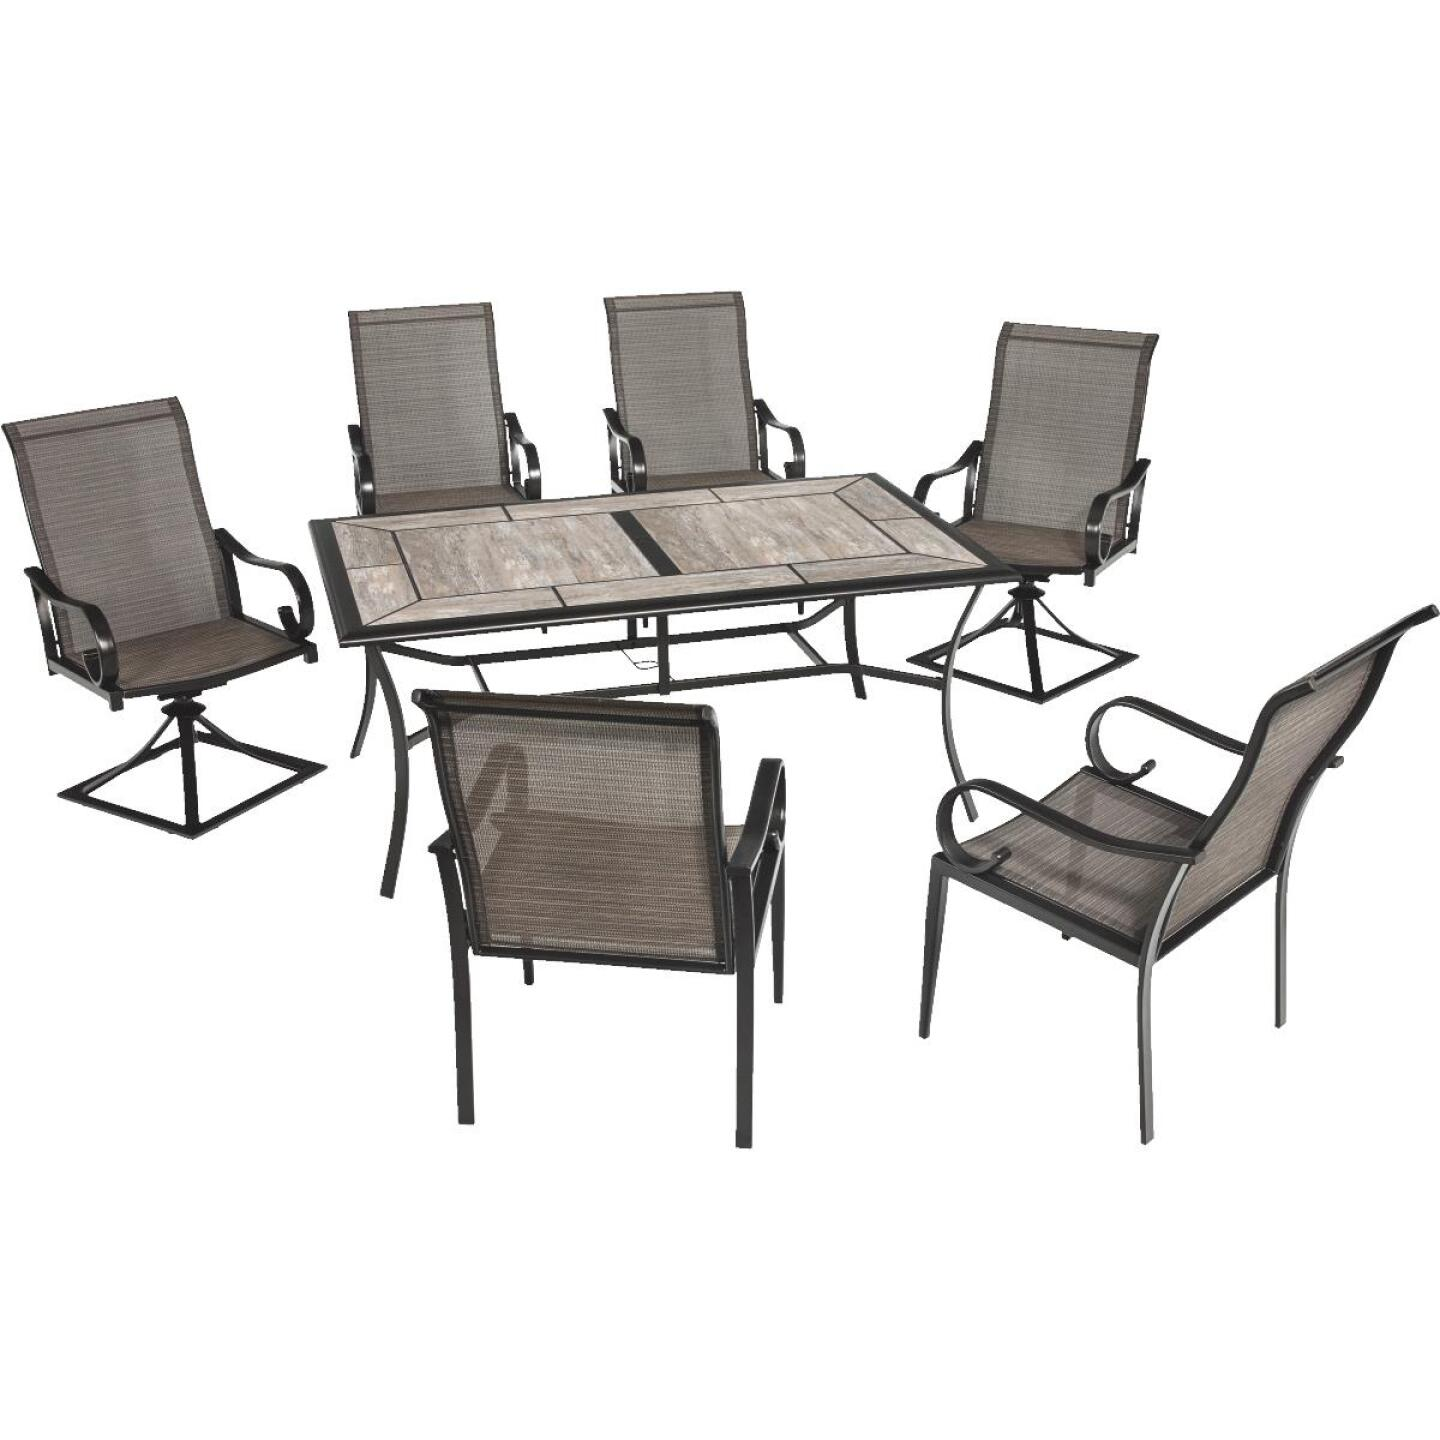 Outdoor Expressions Berkshire 7-Piece Dining Set Image 261